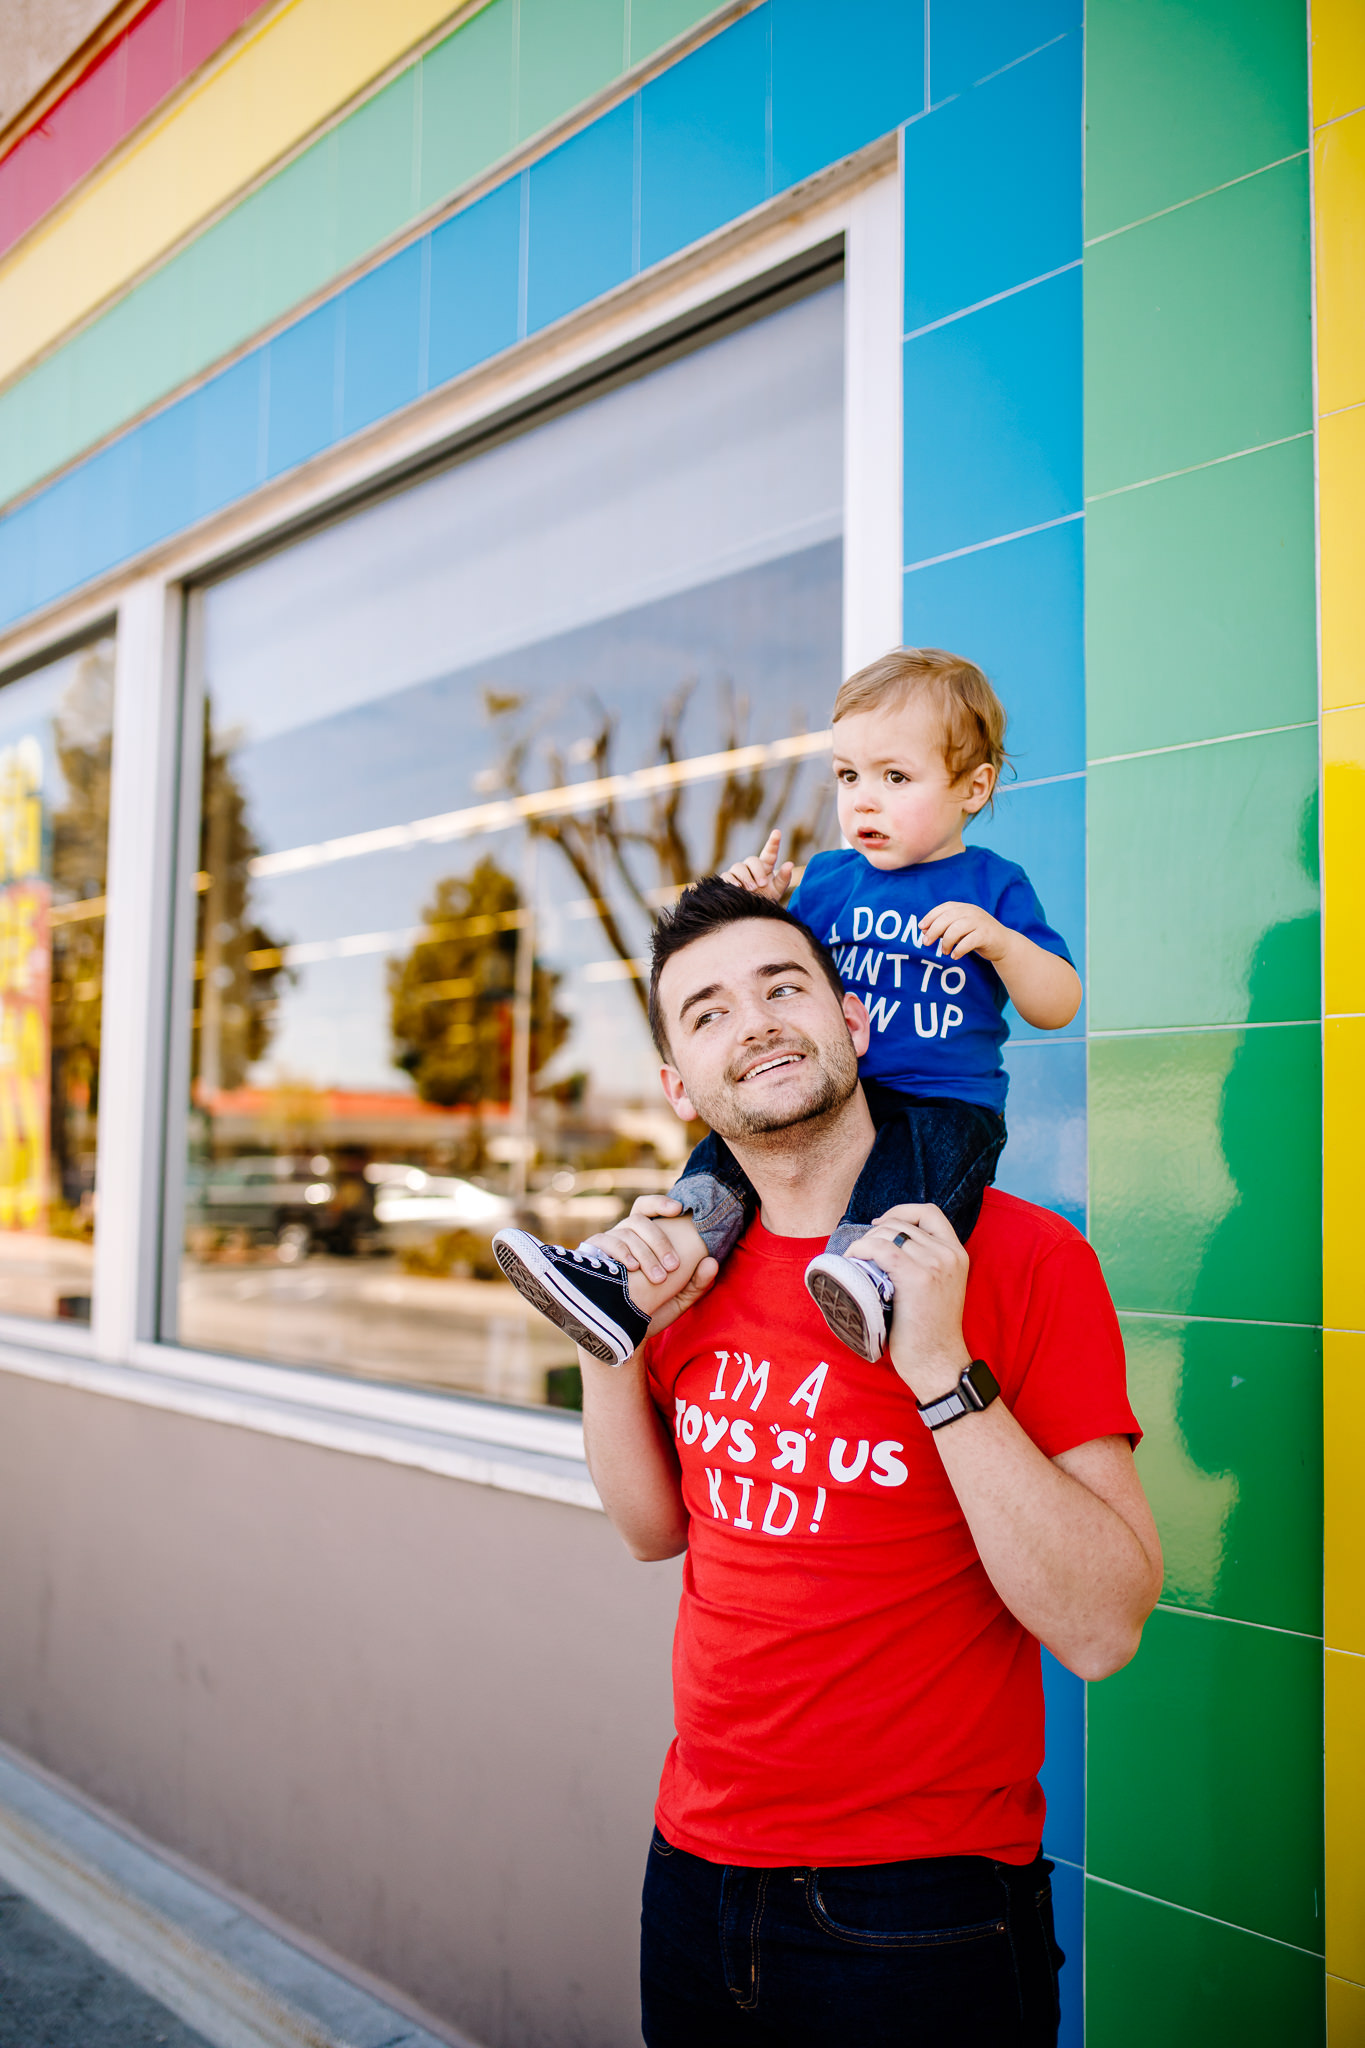 Archer Inspired Photography Im a Toys R Us Kid I Dont Want To Grow Up San Jose California Family Lifestyle Photographer-4.jpg